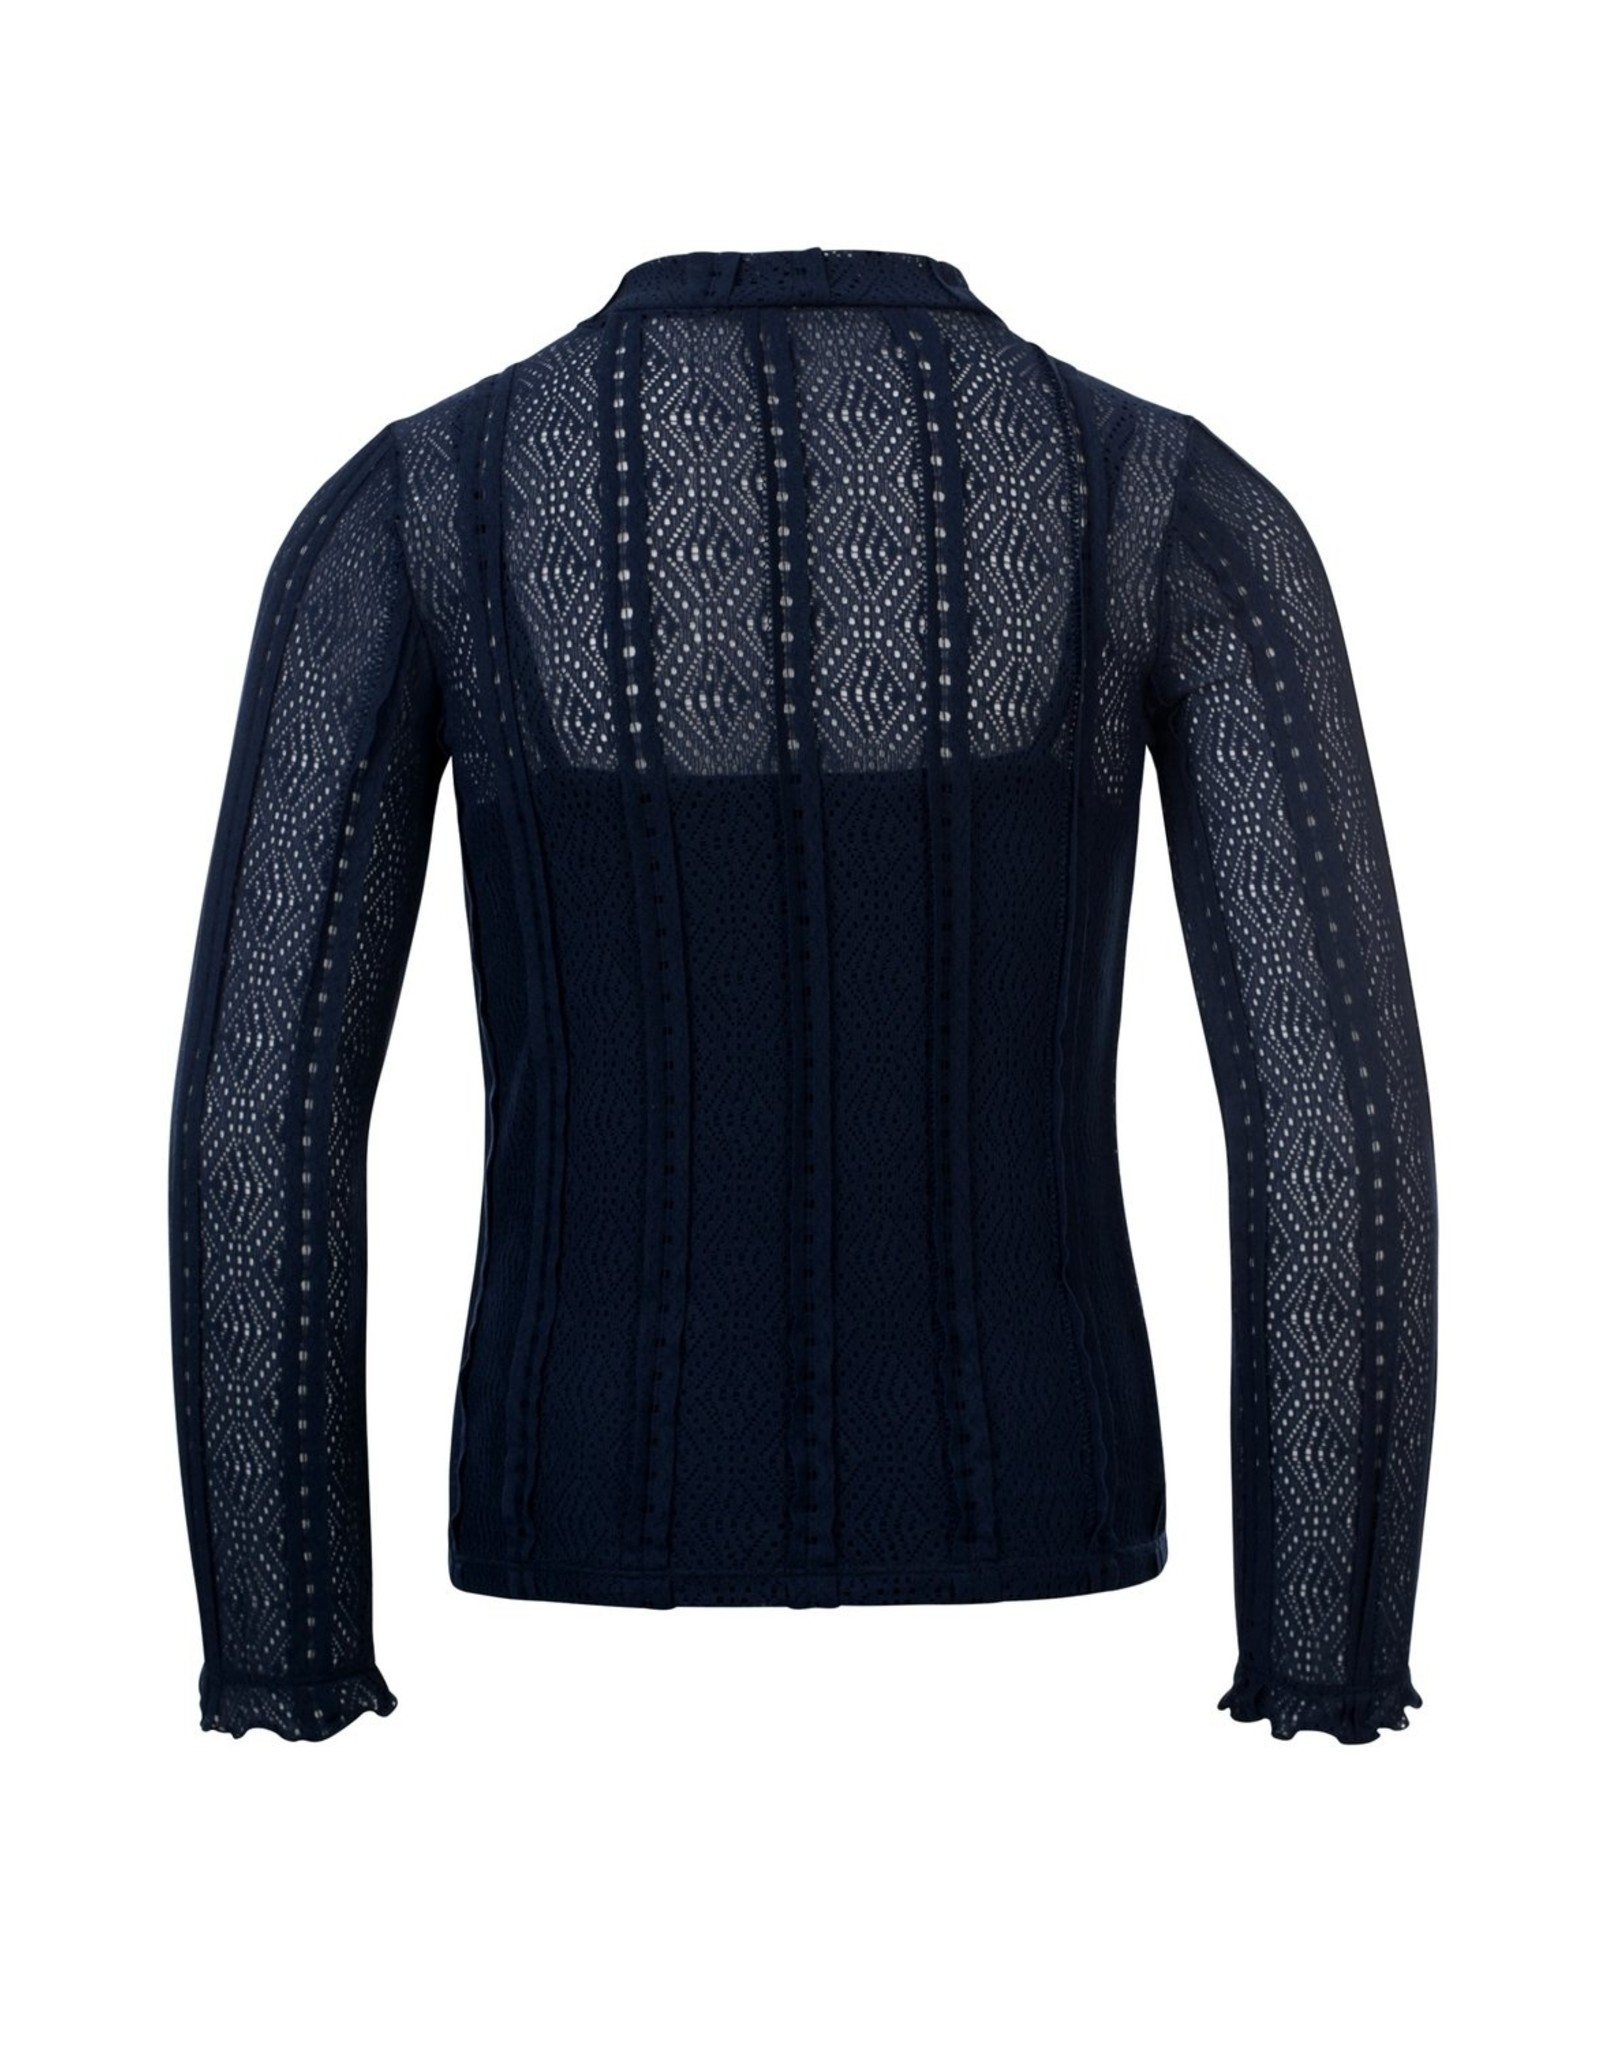 Looxs 10SIXTEEN Girls lace top m